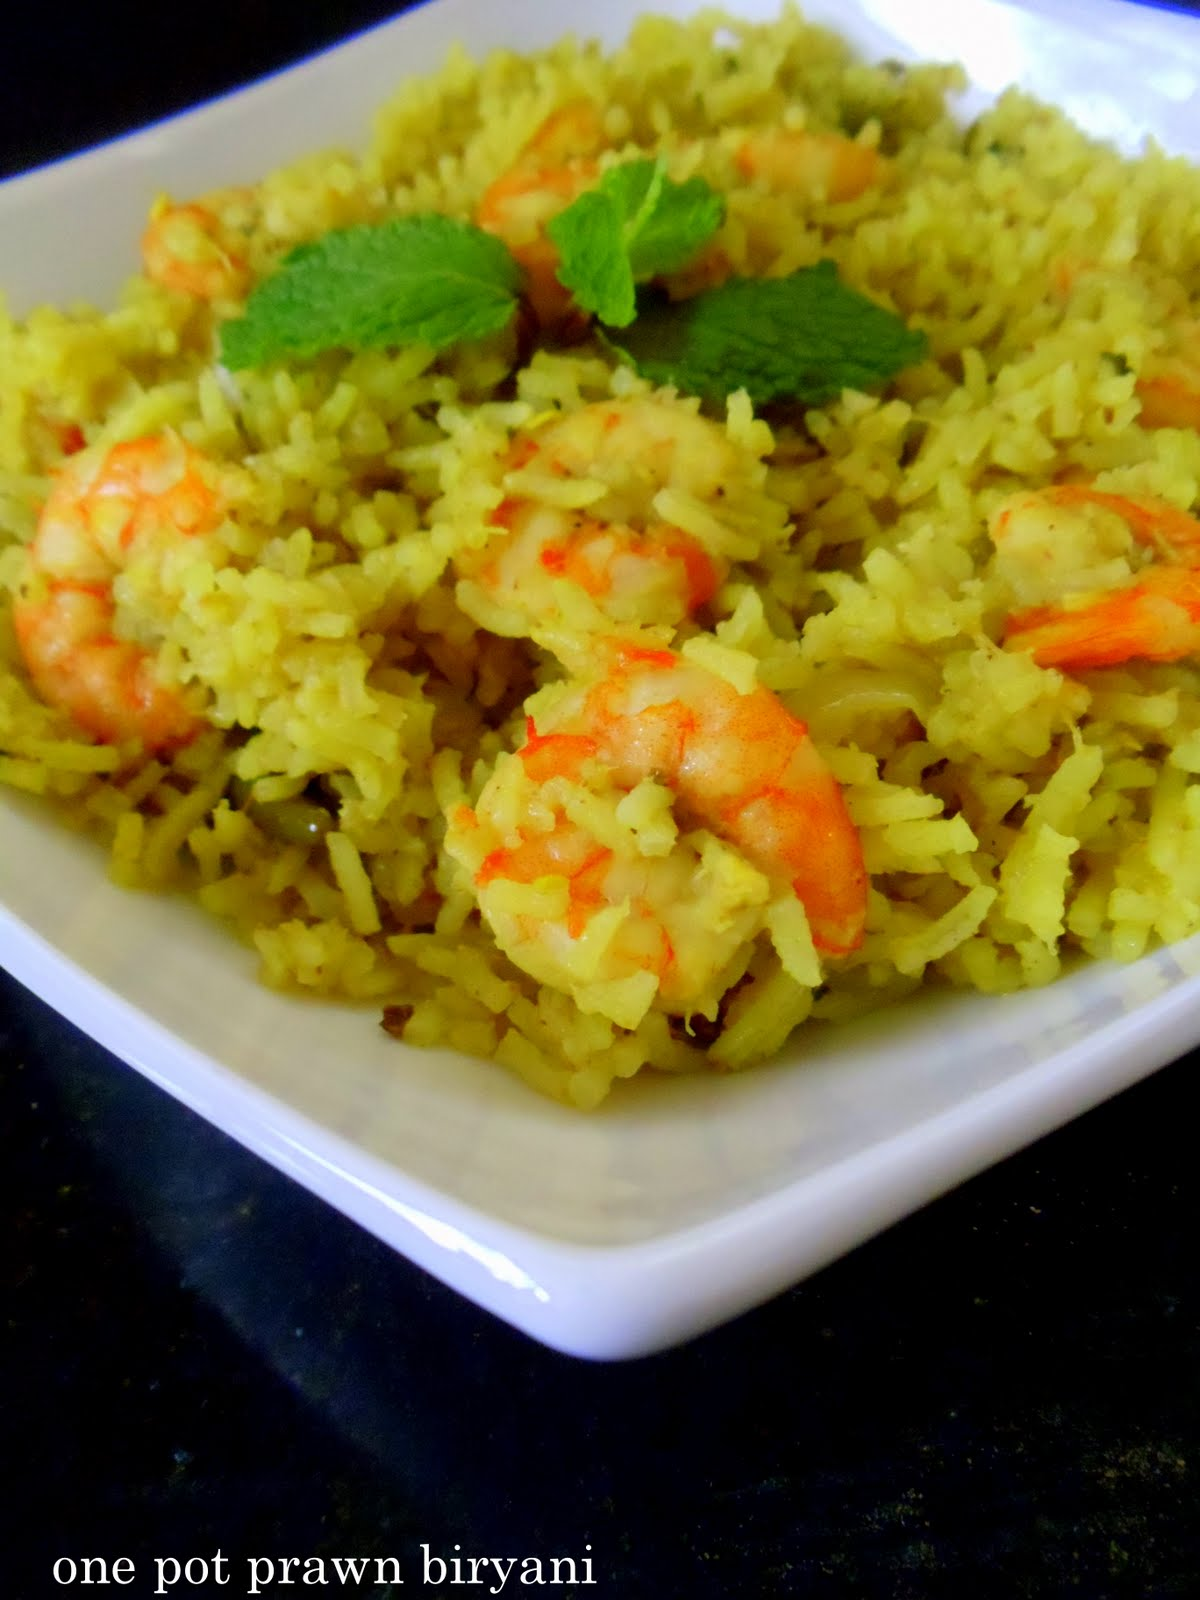 Cherie's Stolen Recipes: one pot prawn biryani